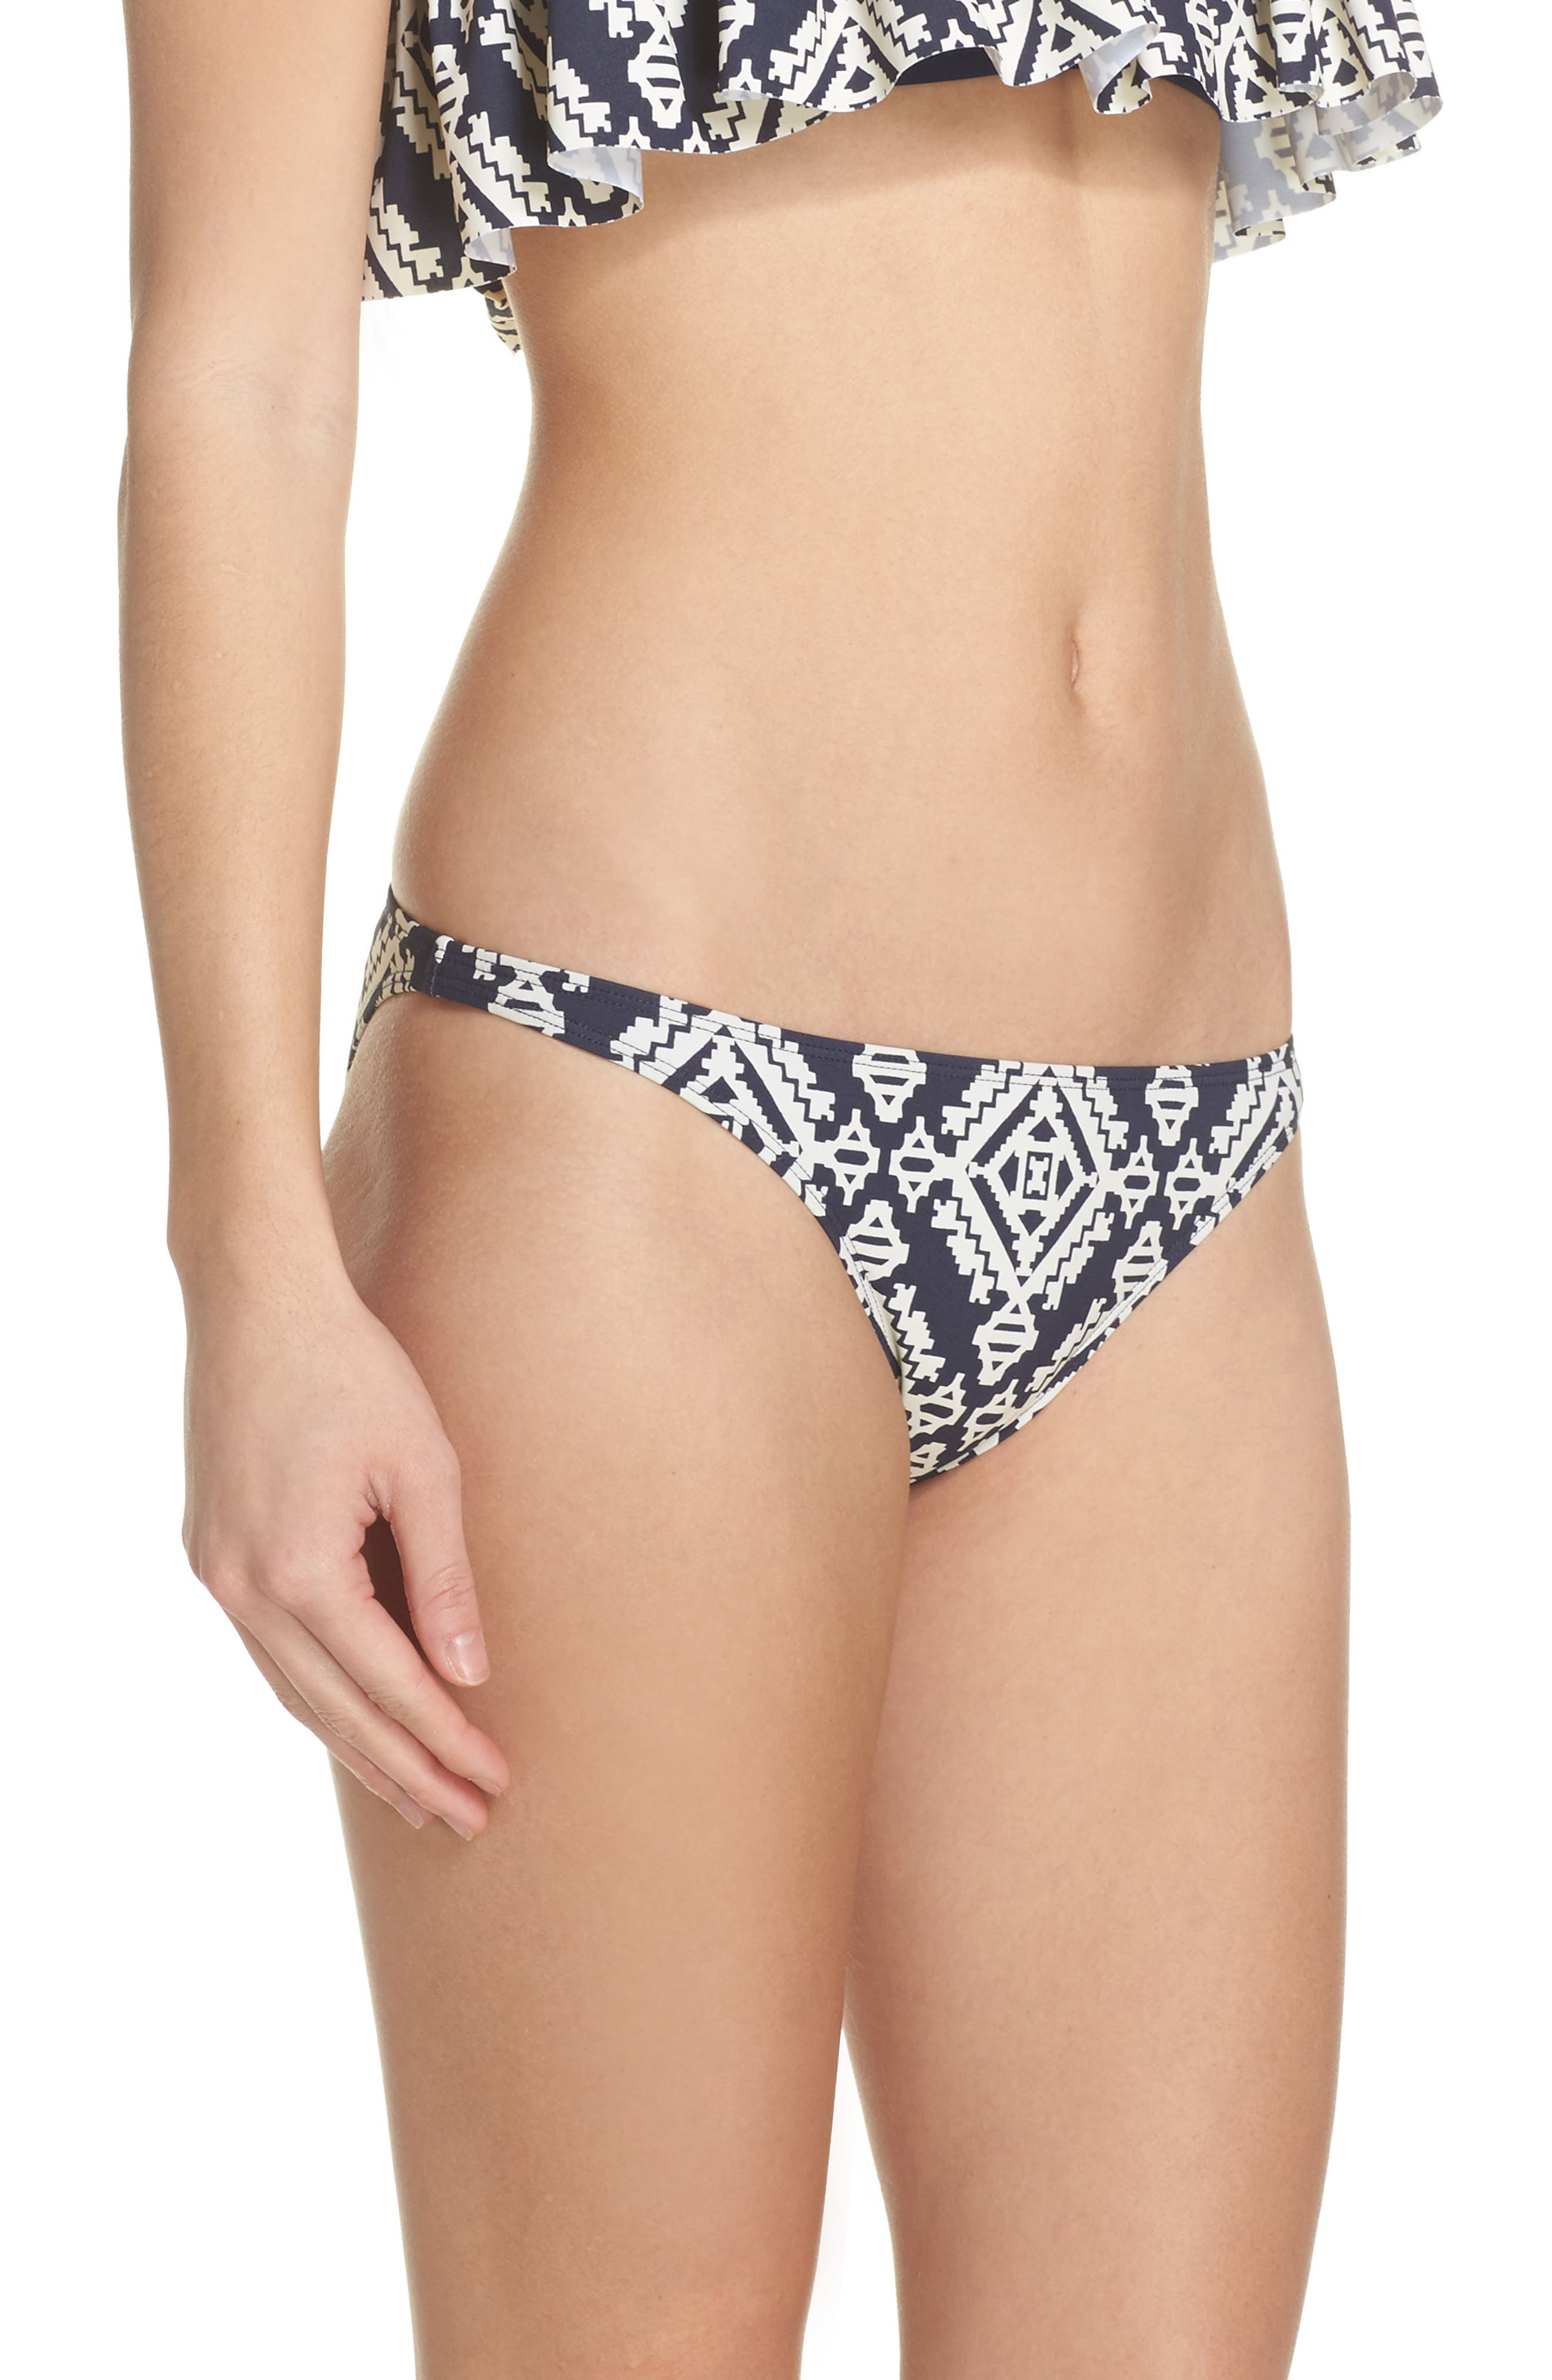 Tapestry Geometric Hipster Bikini Bottoms,                             Alternate thumbnail 3, color,                             433